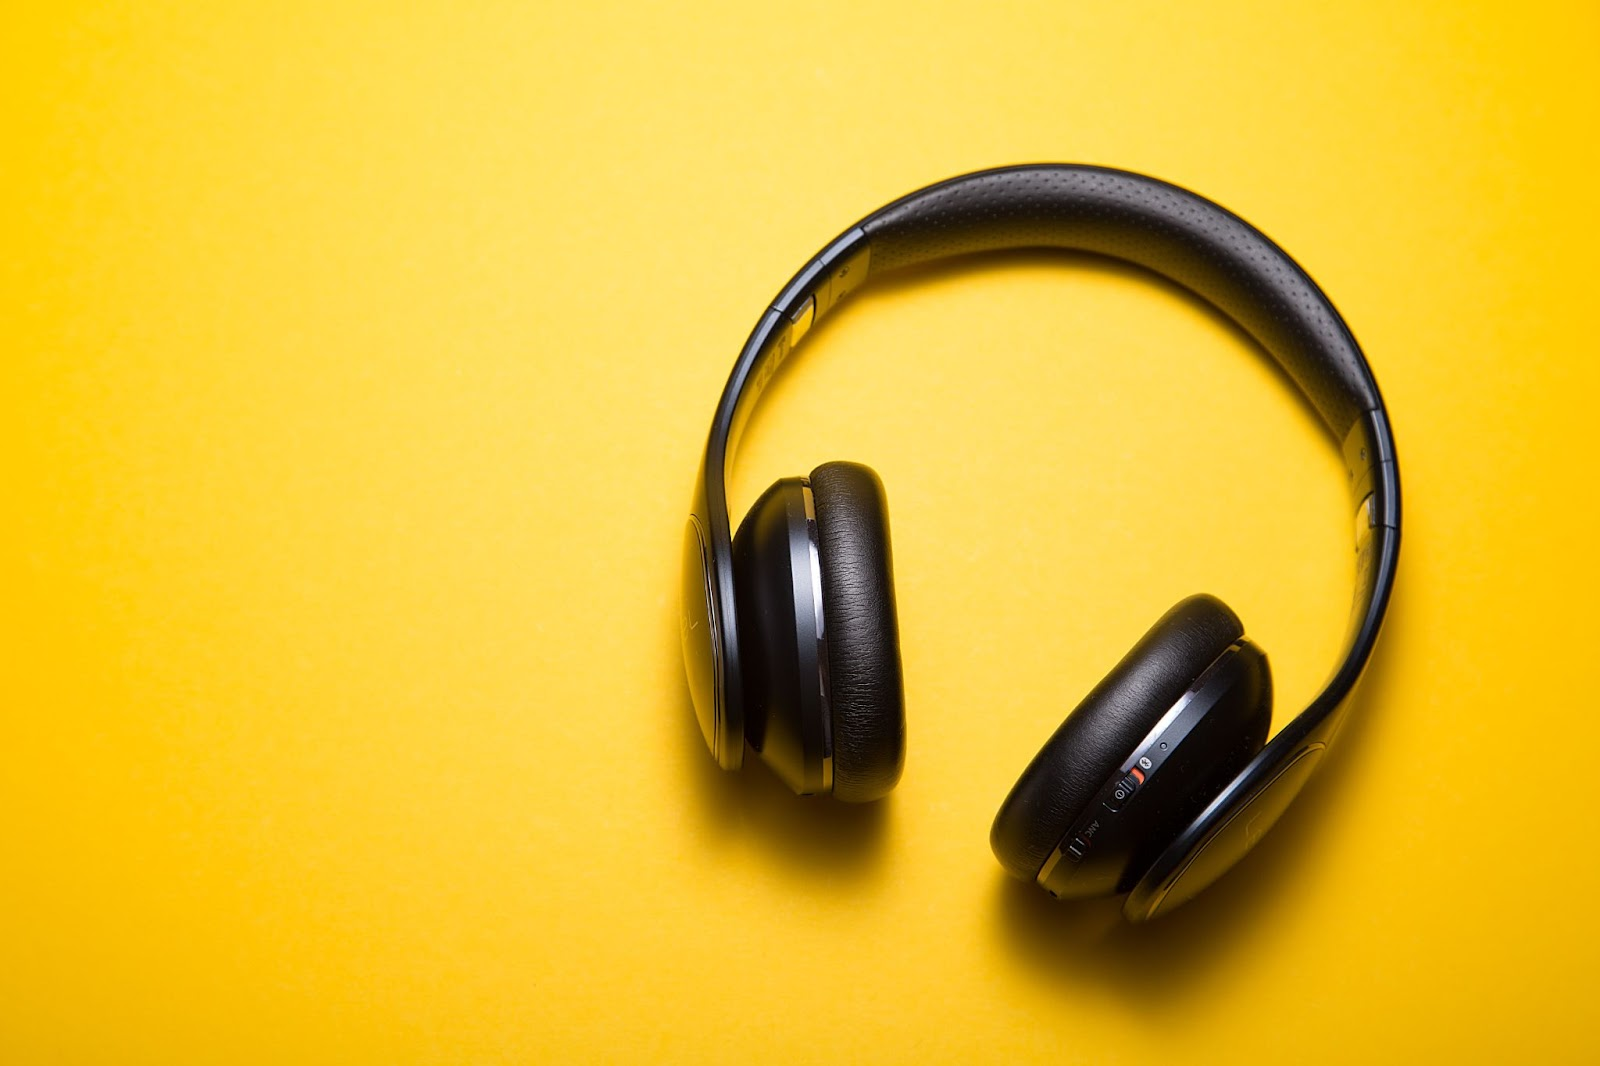 Photo of headphones on yellow background to represent a roundup of the best headphones for video editing.